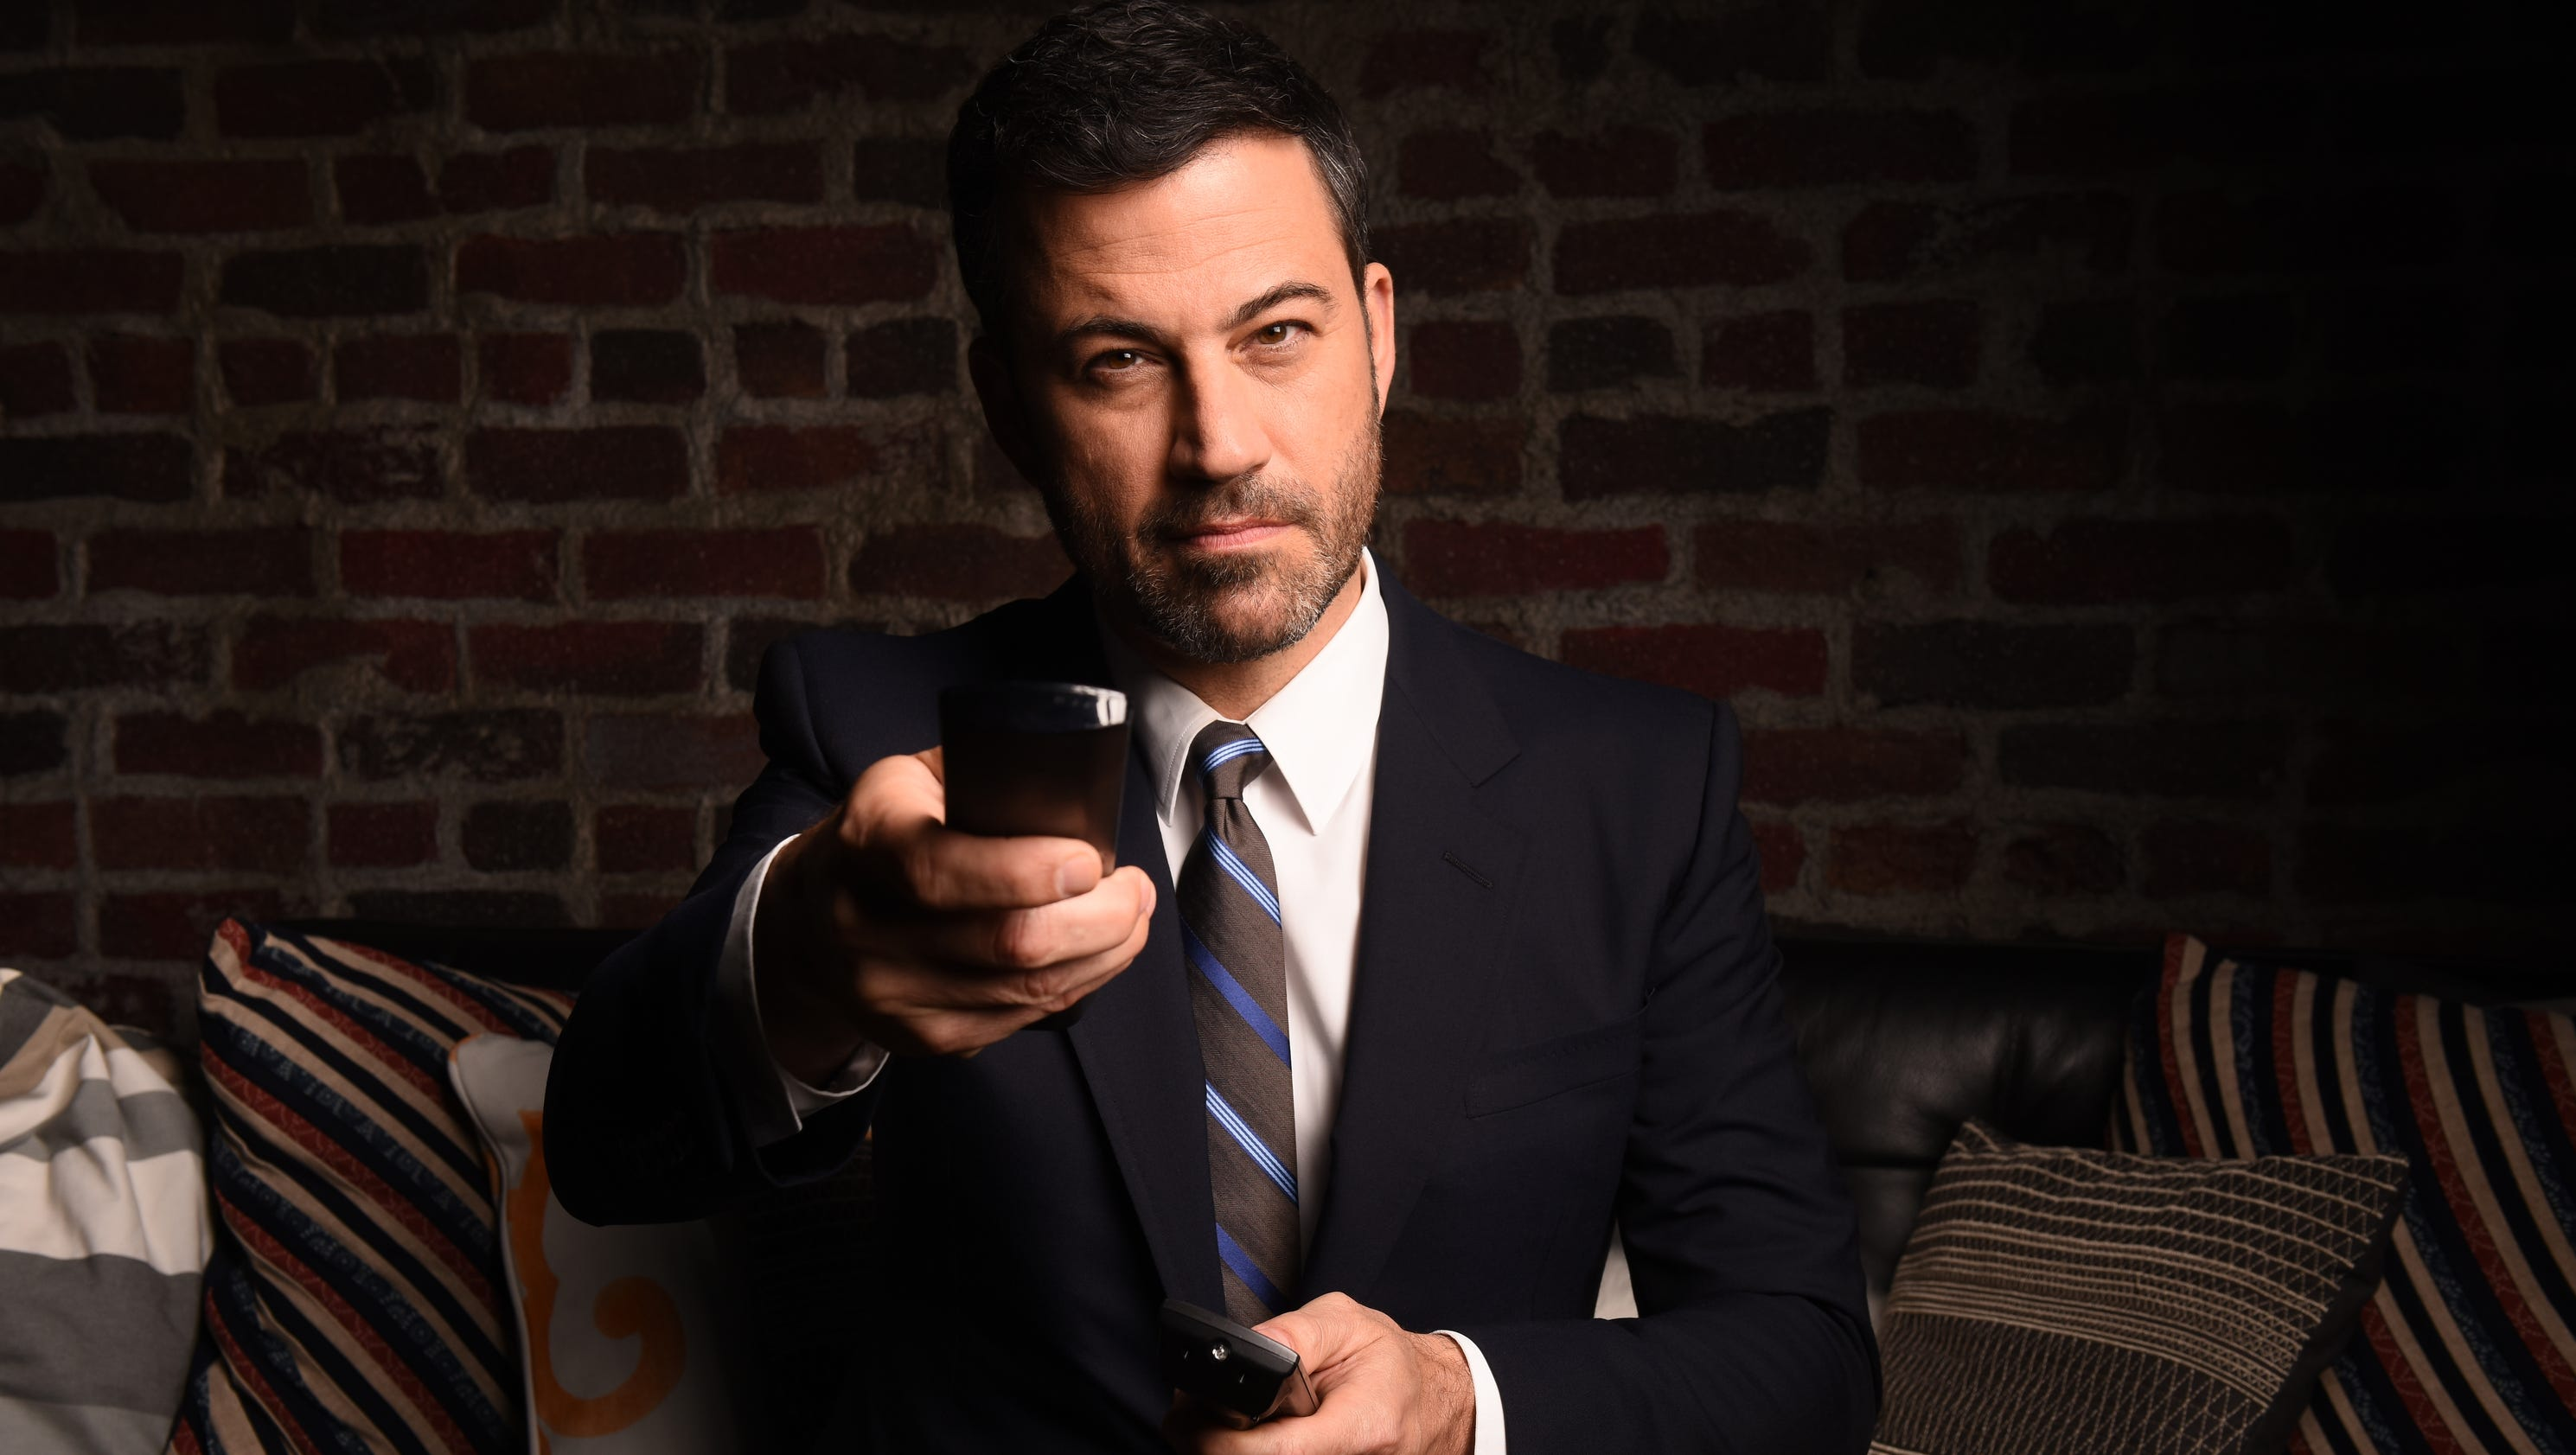 Q Amp A How Mean Can Emmy Host Jimmy Kimmel Be